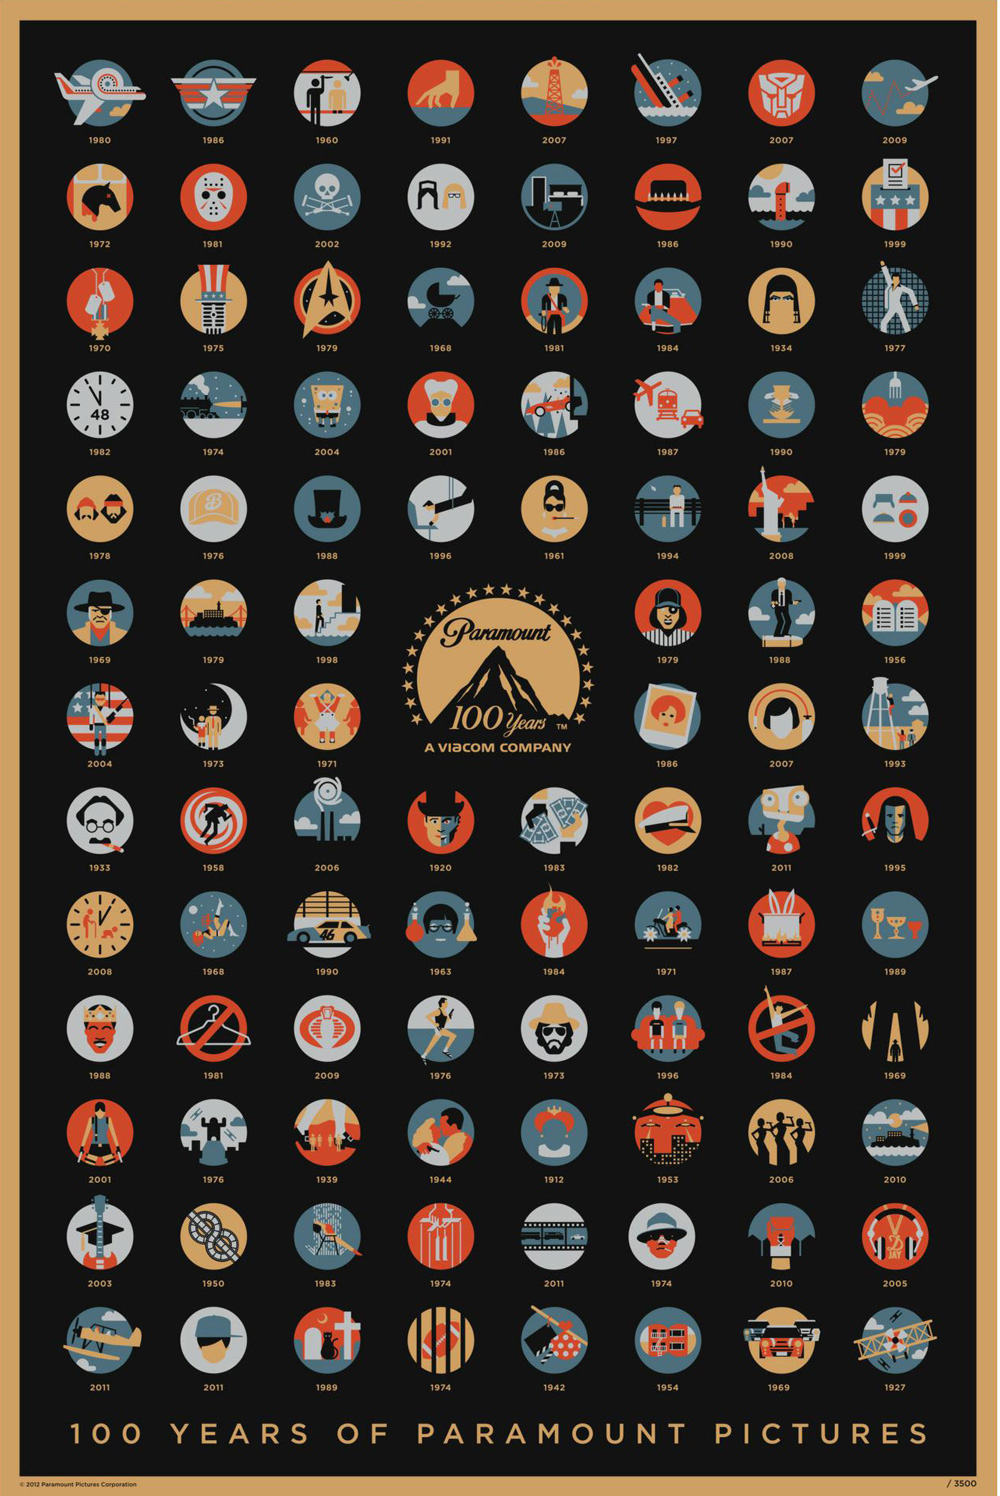 100 Years of Paramount Pictures